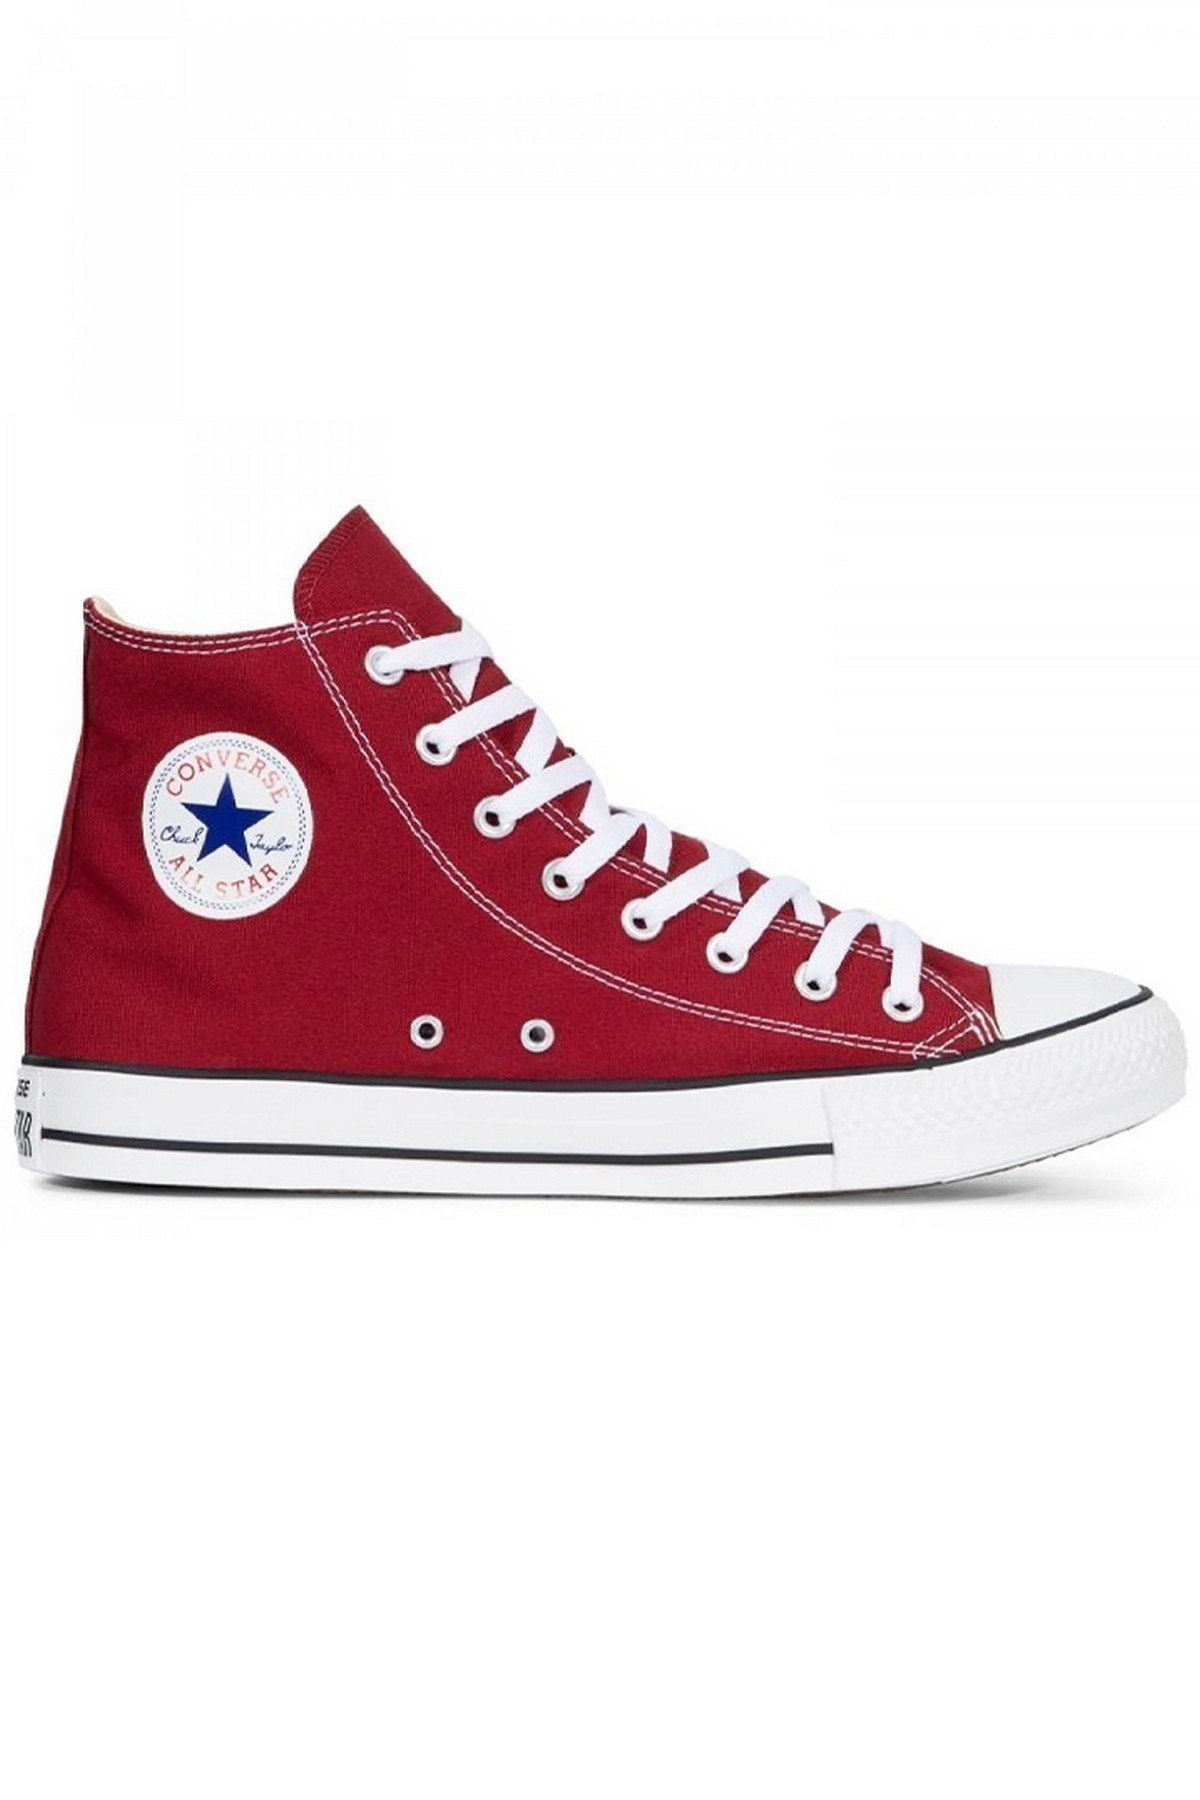 Converse Chuck Taylor All Star Bordo Sneaker (M9613)